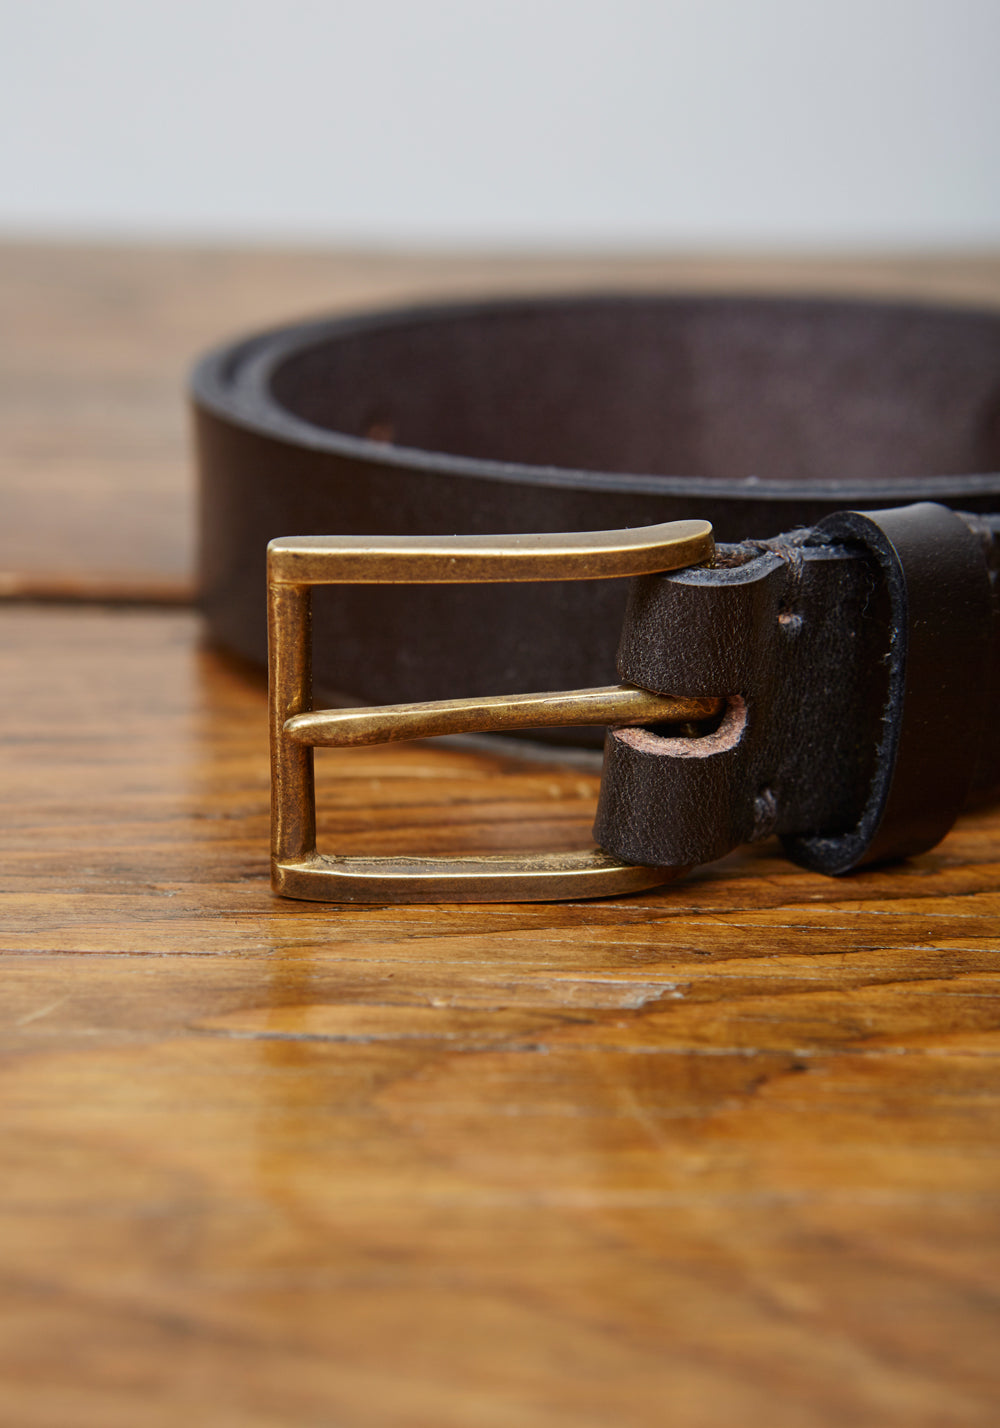 Leather belt | Alice Made This